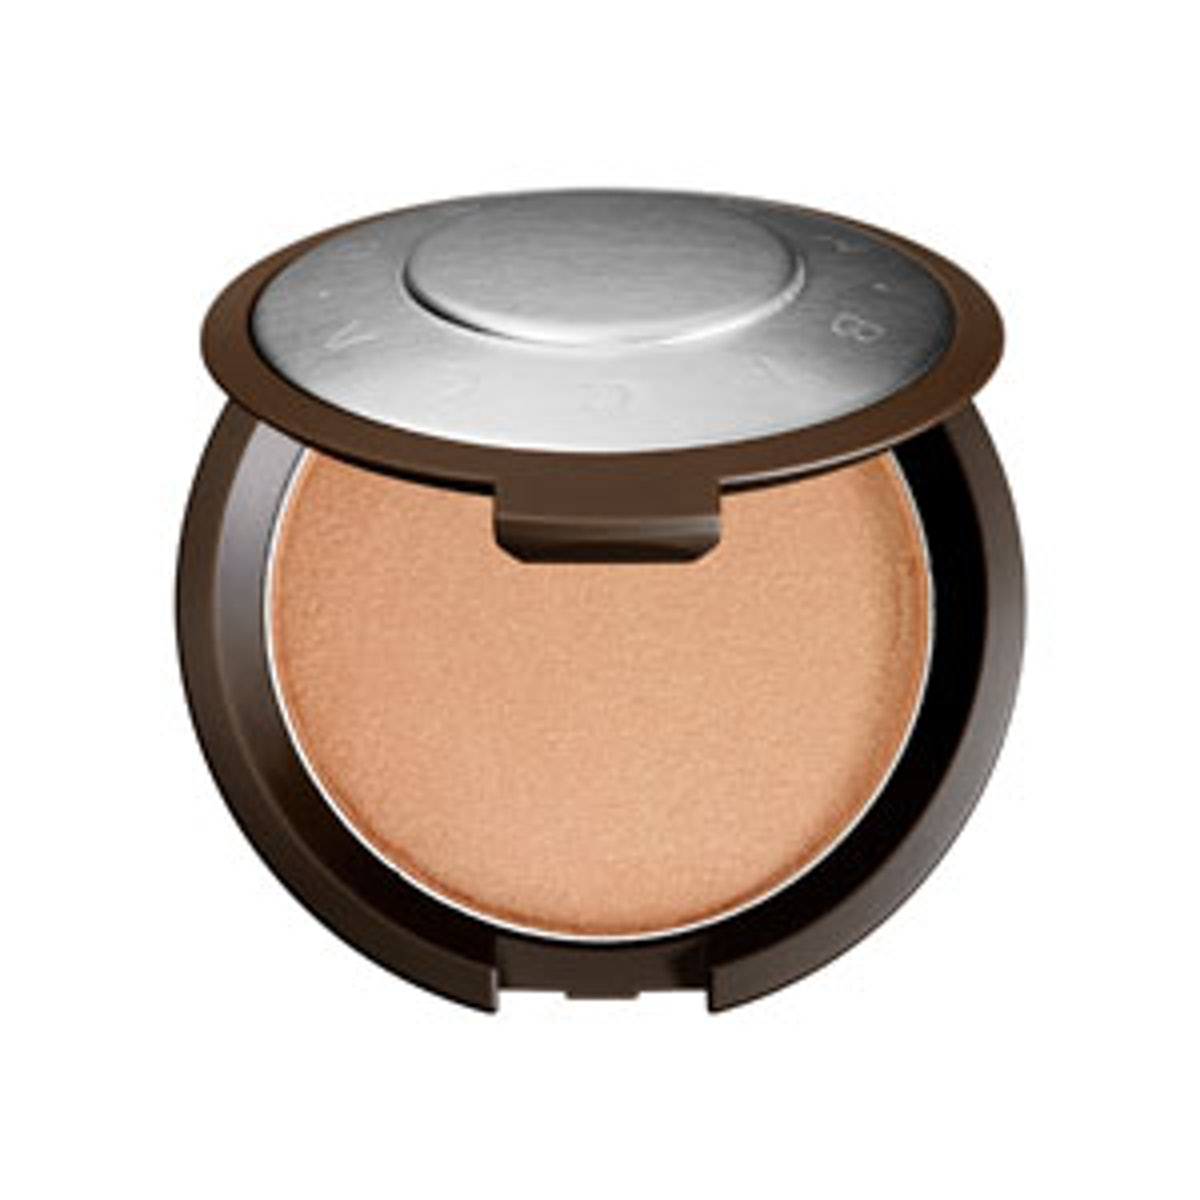 Shimmering Skin Perfector In Champagne Pop